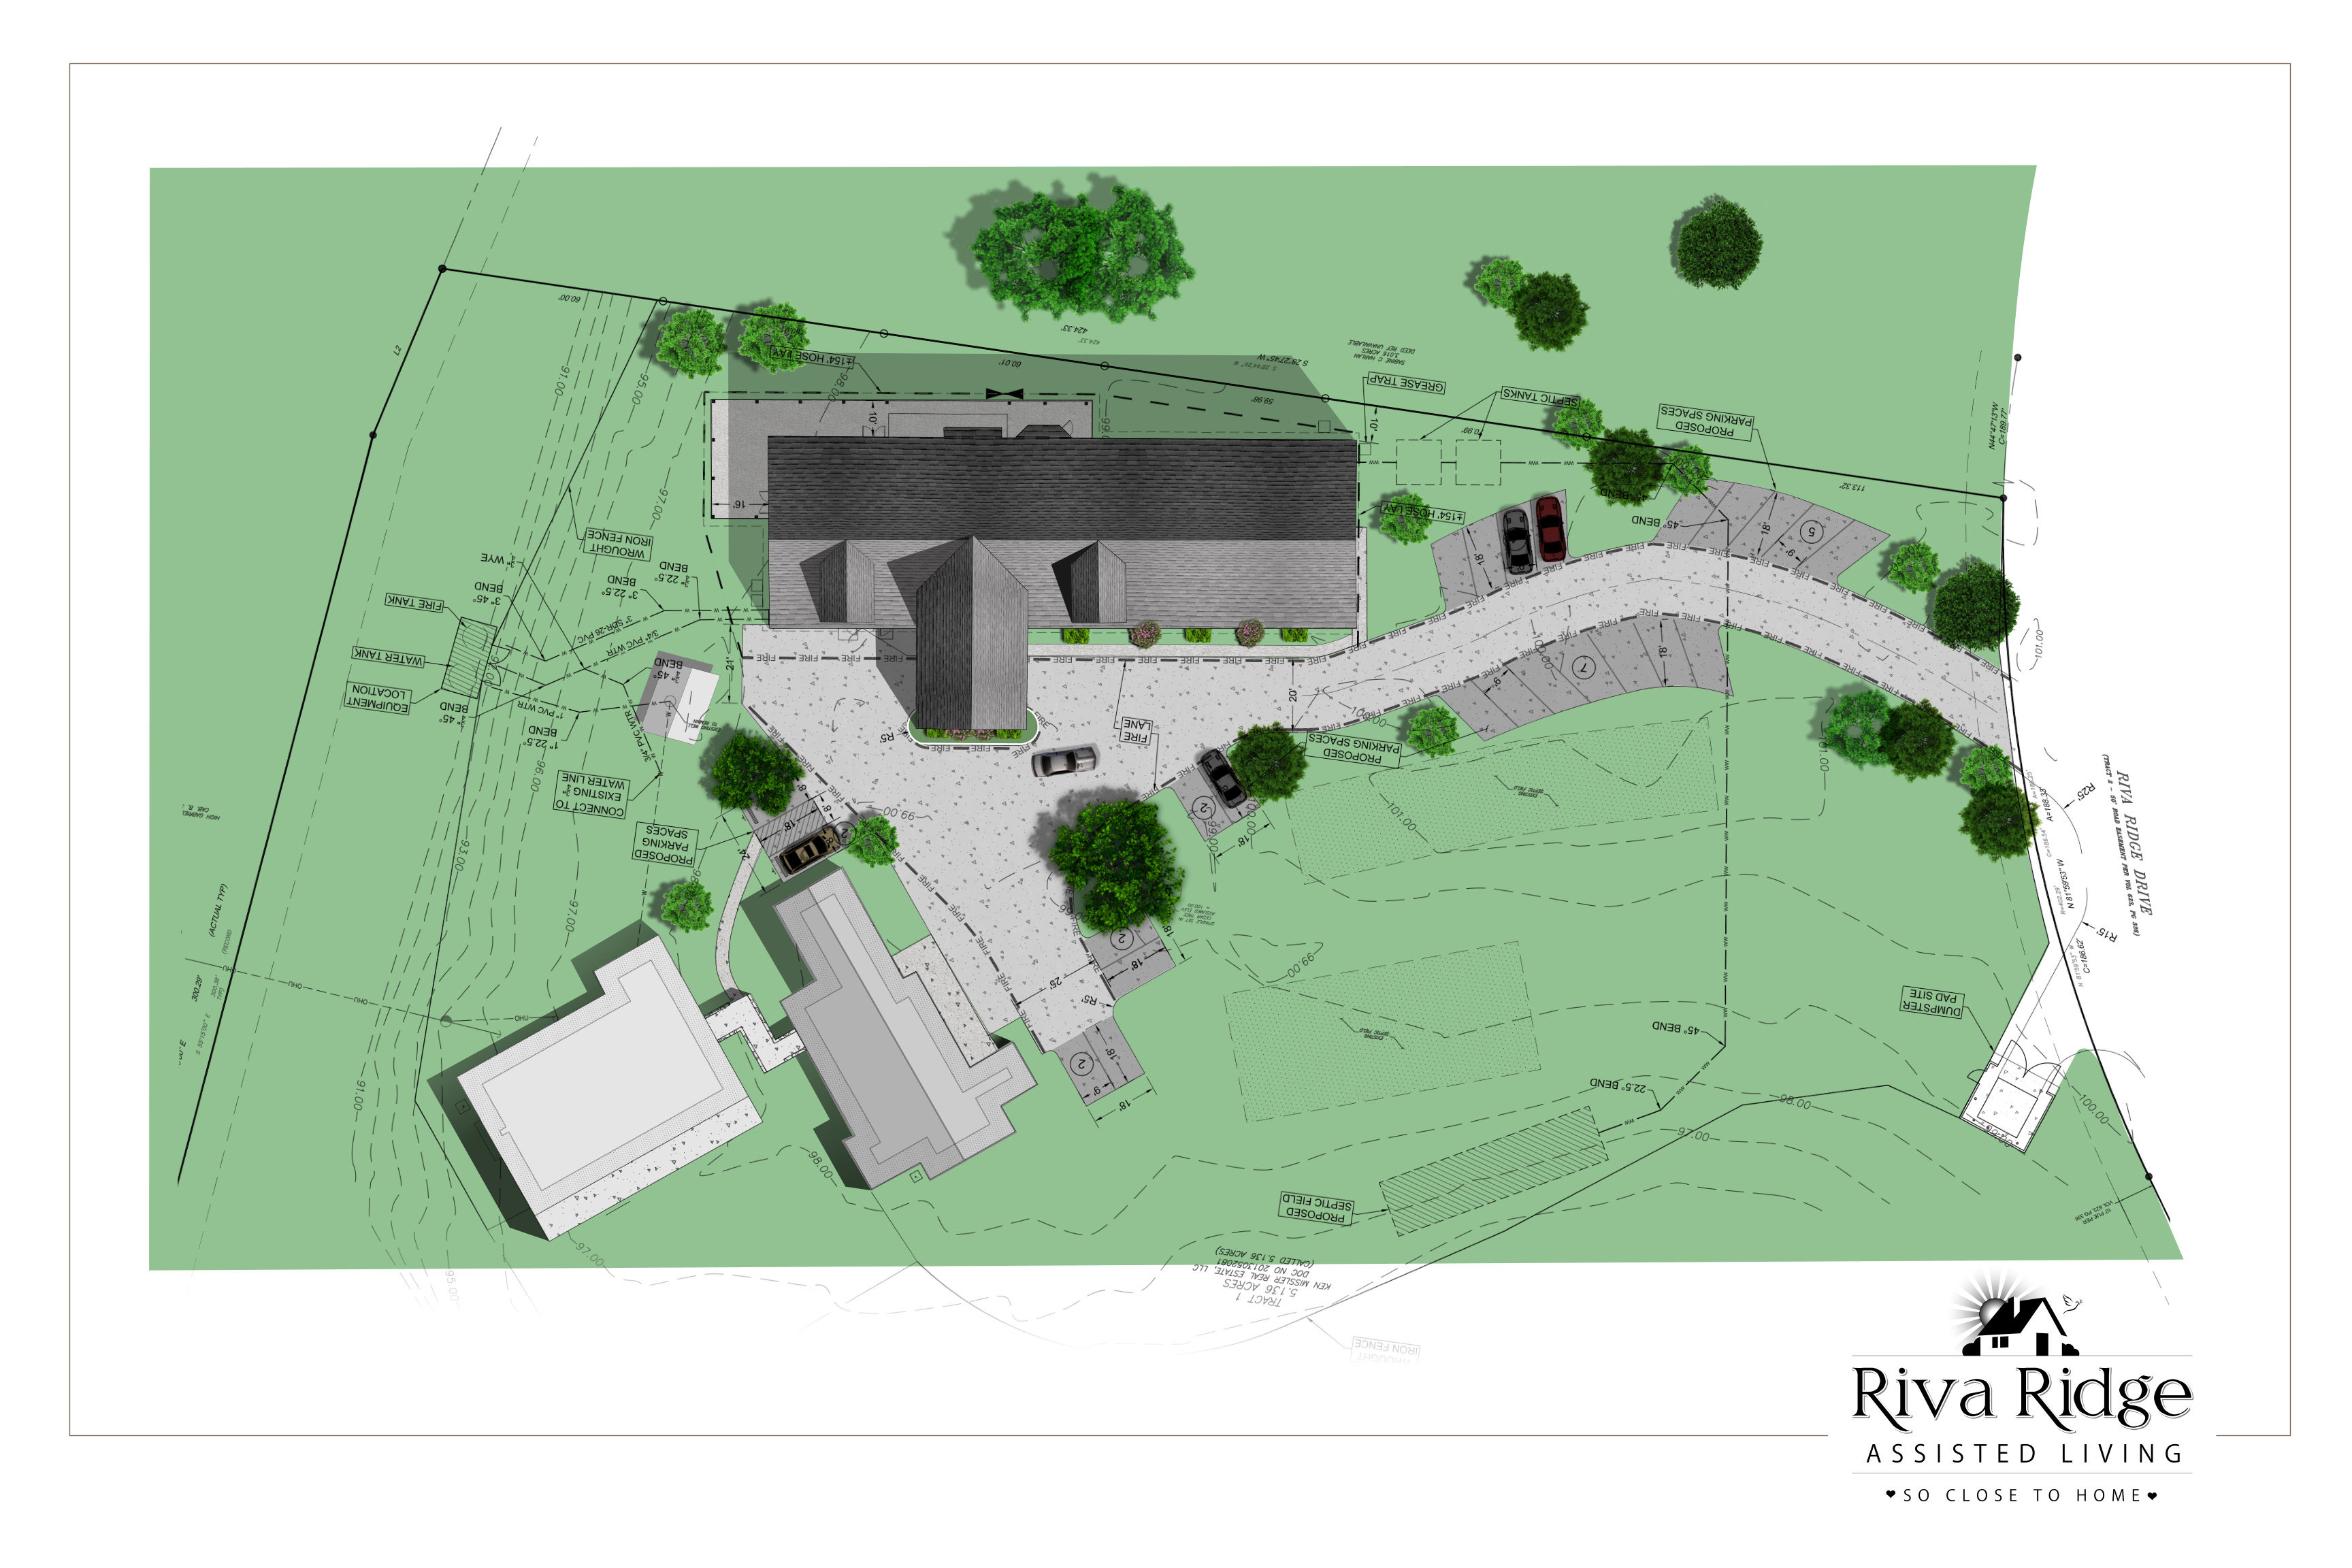 Riva Ridge Assisted Living Site Plan